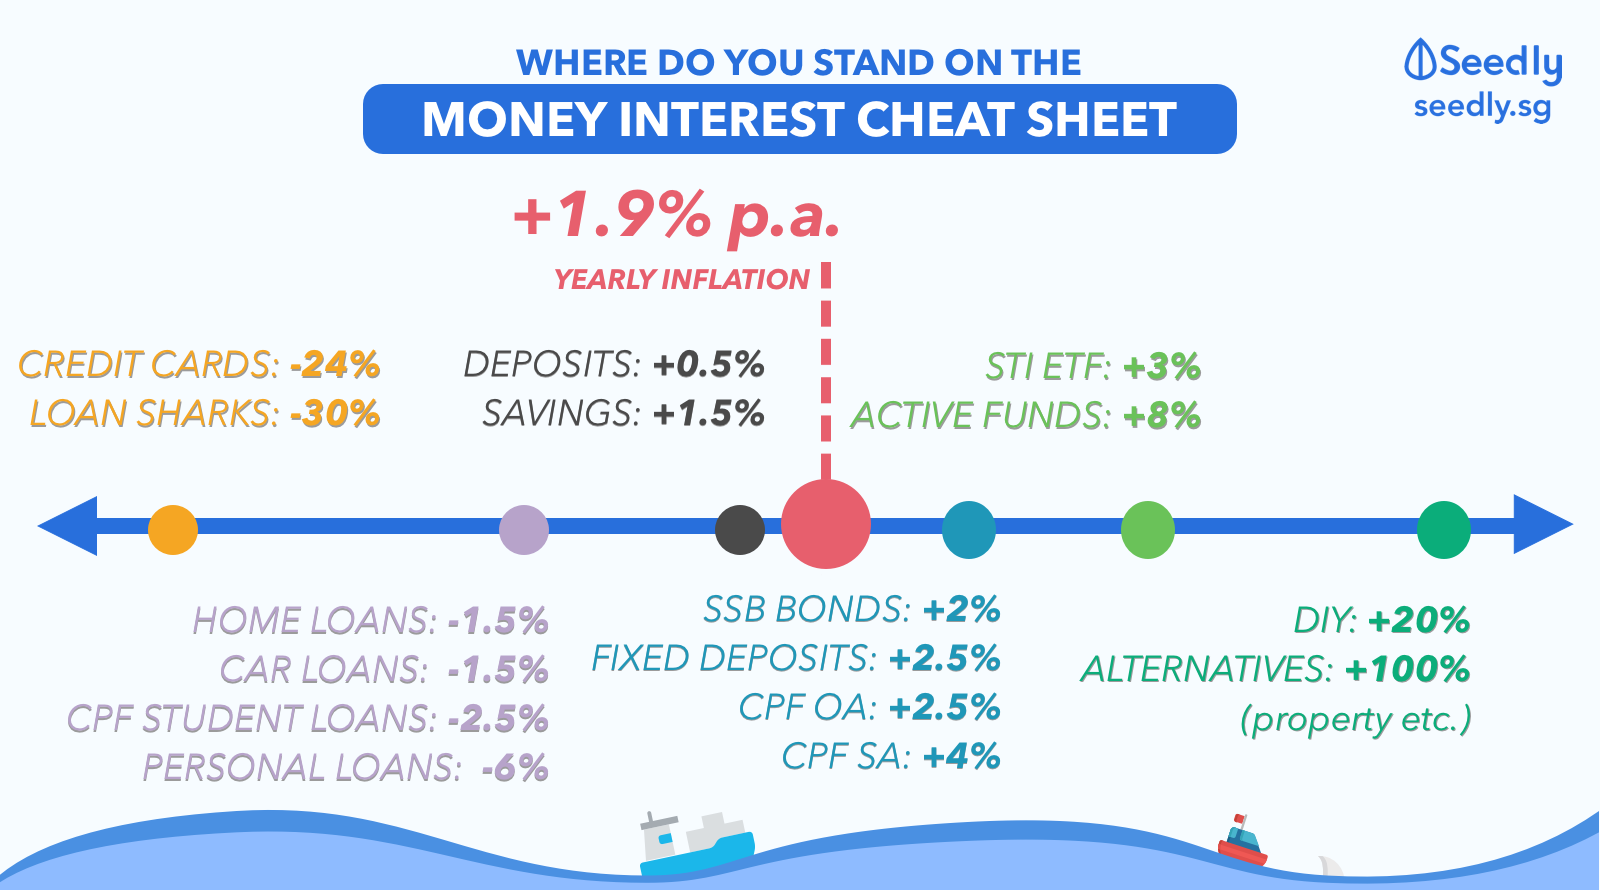 Interest Cheat Sheet Seedly 2